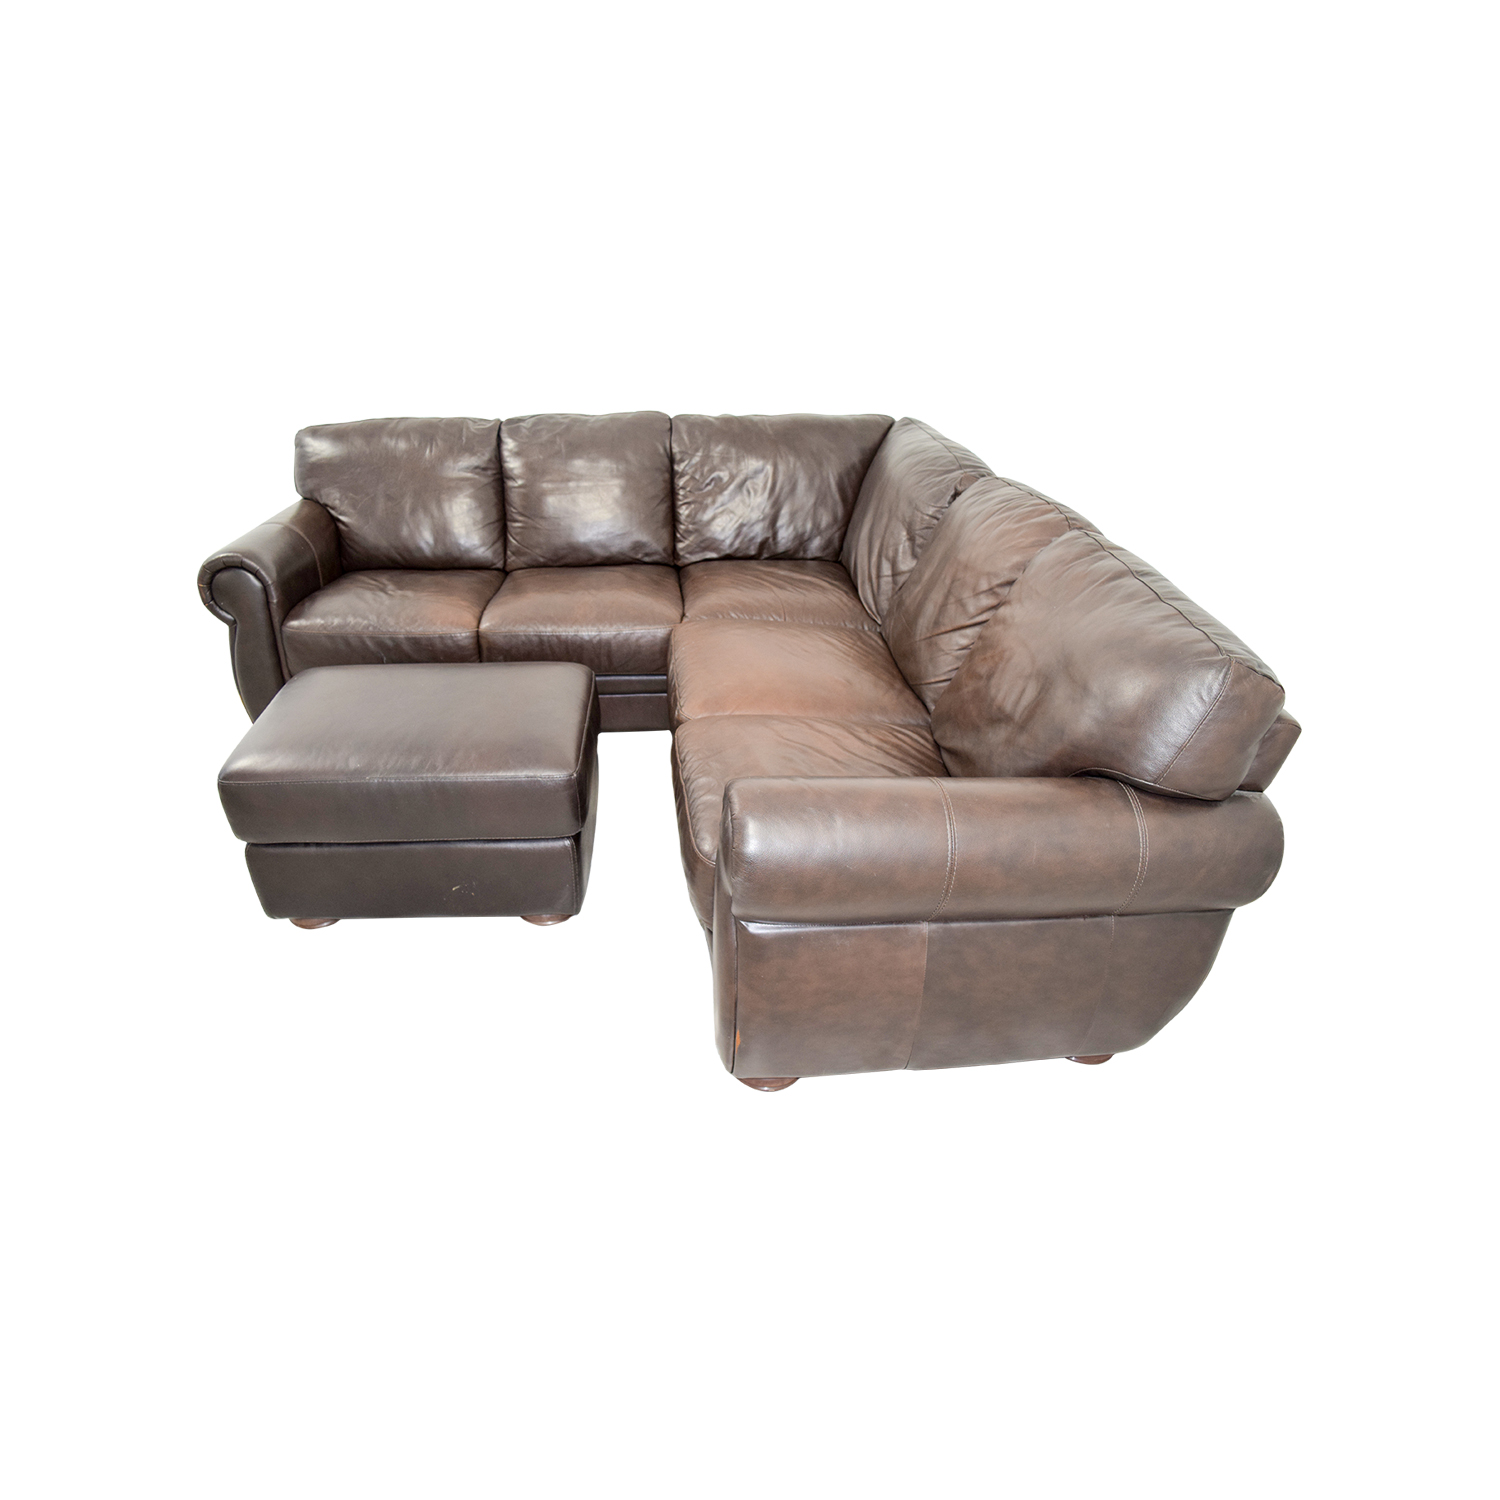 Chateau D'Ax Chateau Dax Brown Leather Sectional